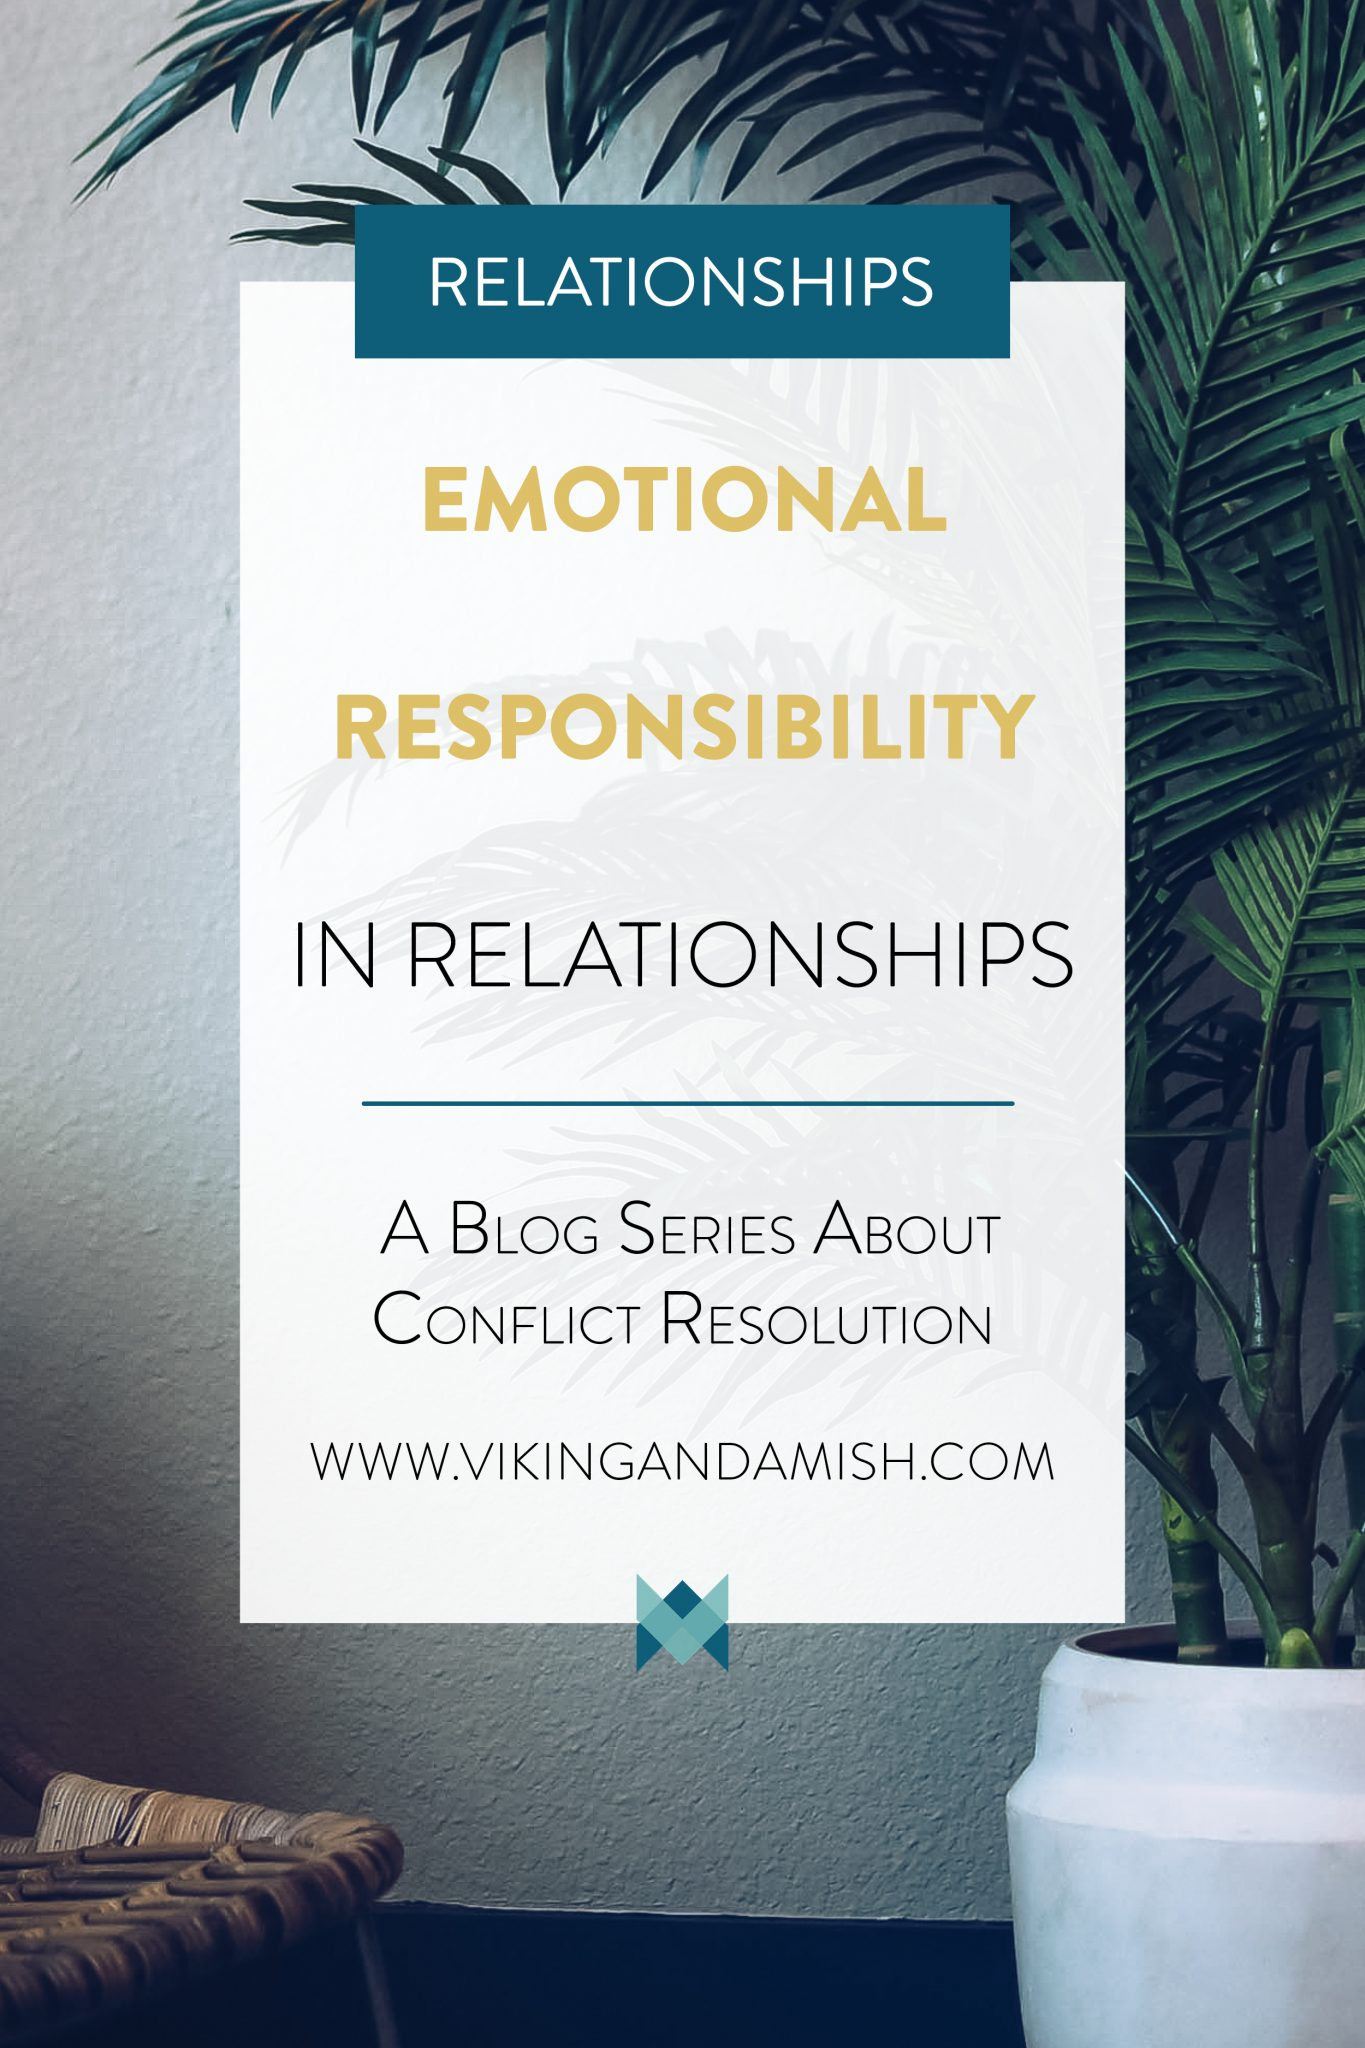 Conflicts can make relationships messy. This article offers advice on emotional responsibility and conflicts resolution that can help your relationship.